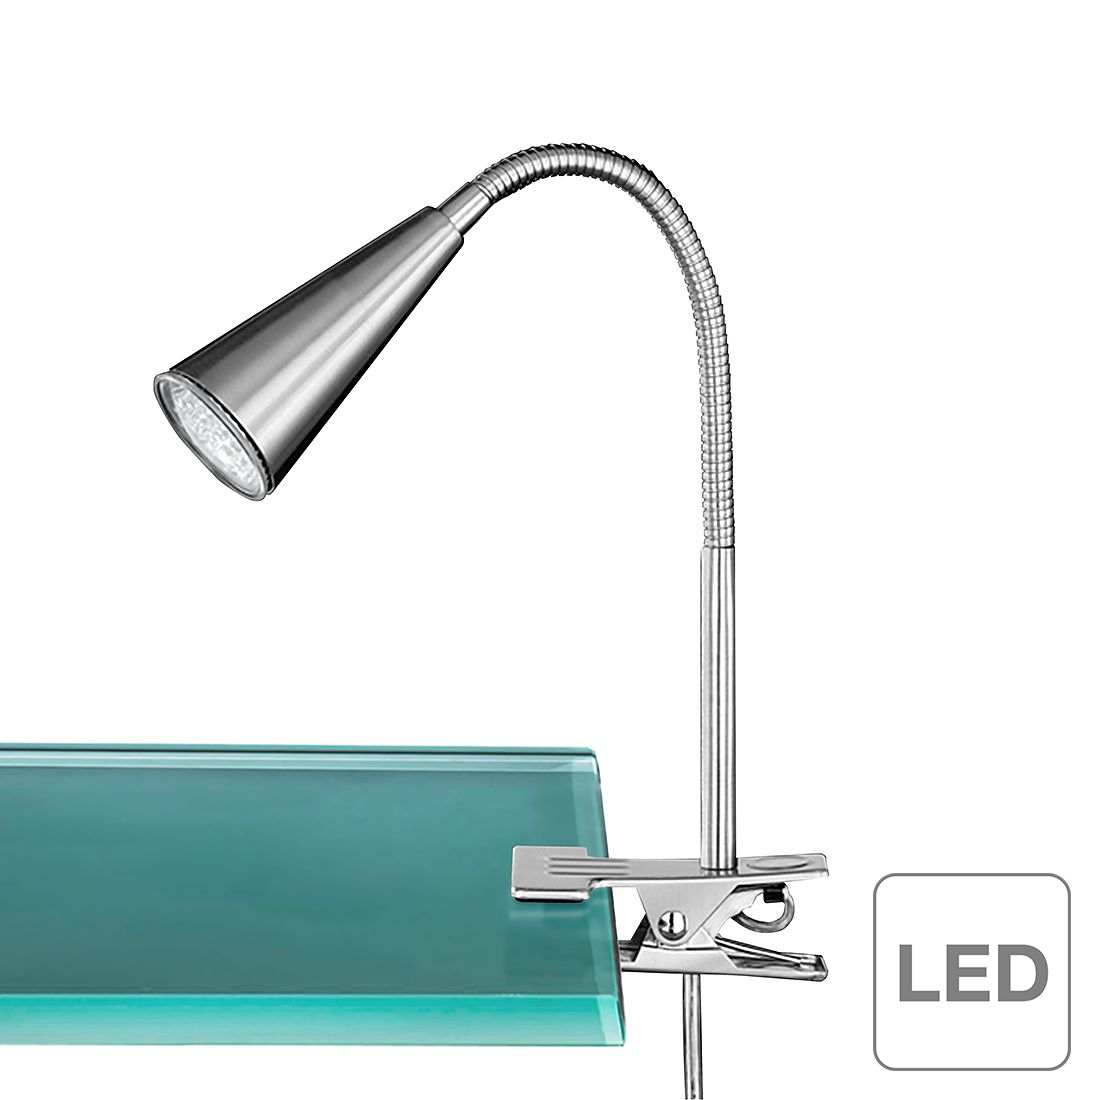 energie  A++, LED-klemlamp Arcos - 1 lichtbron, Action